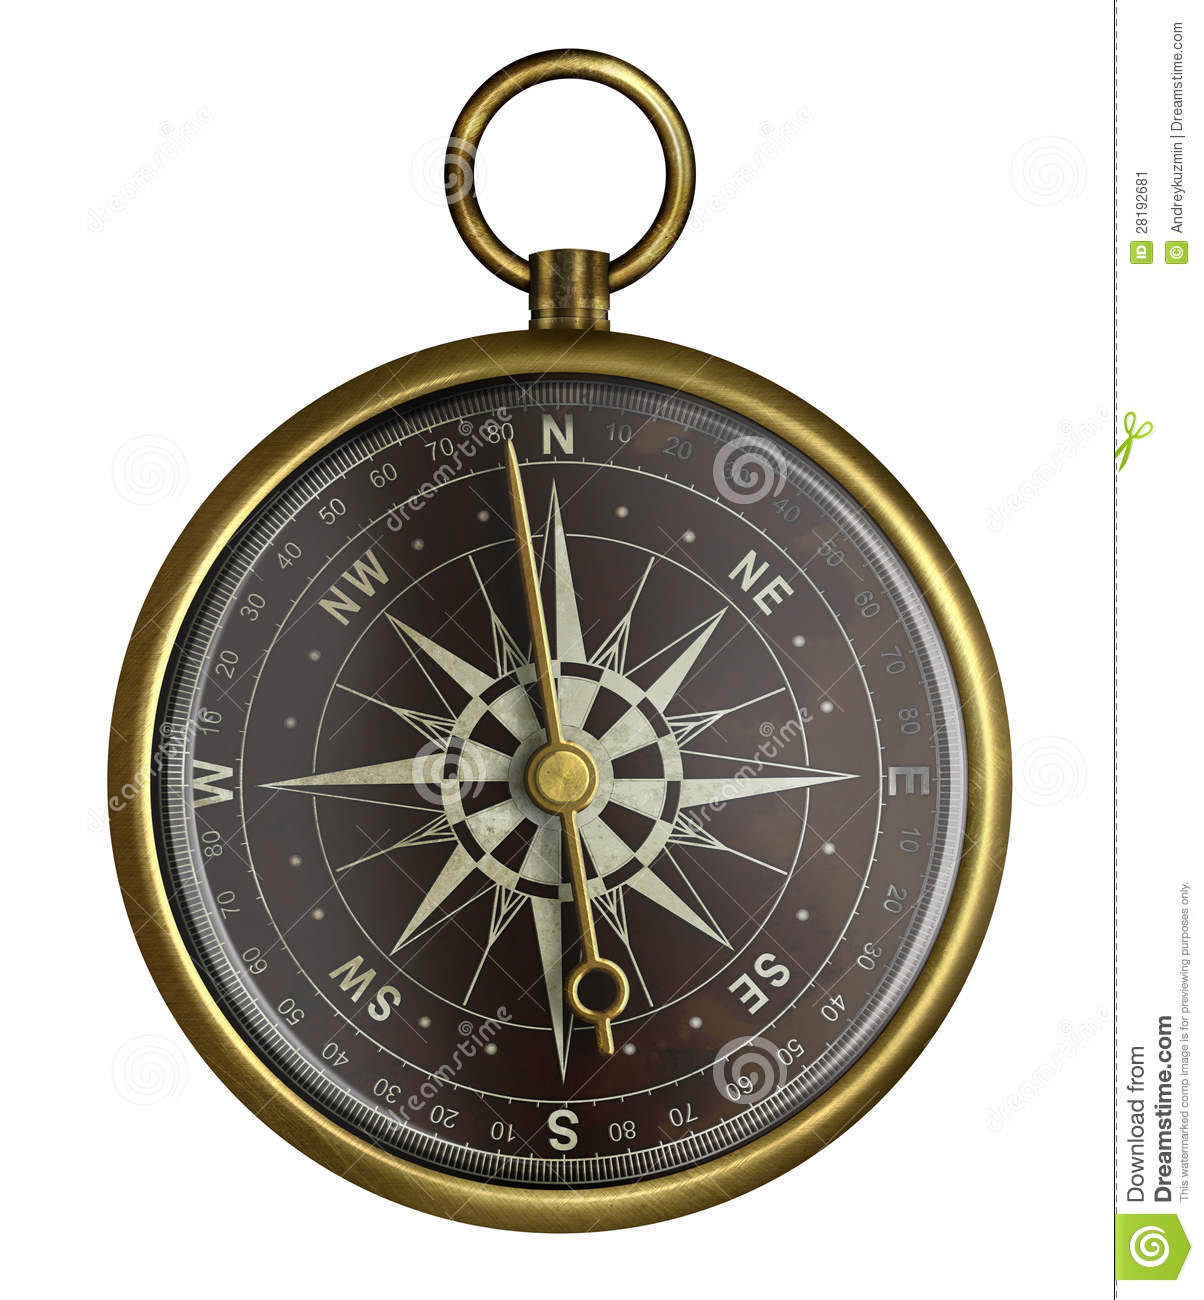 Old Brass Antique Compass With Dark Face Isolated